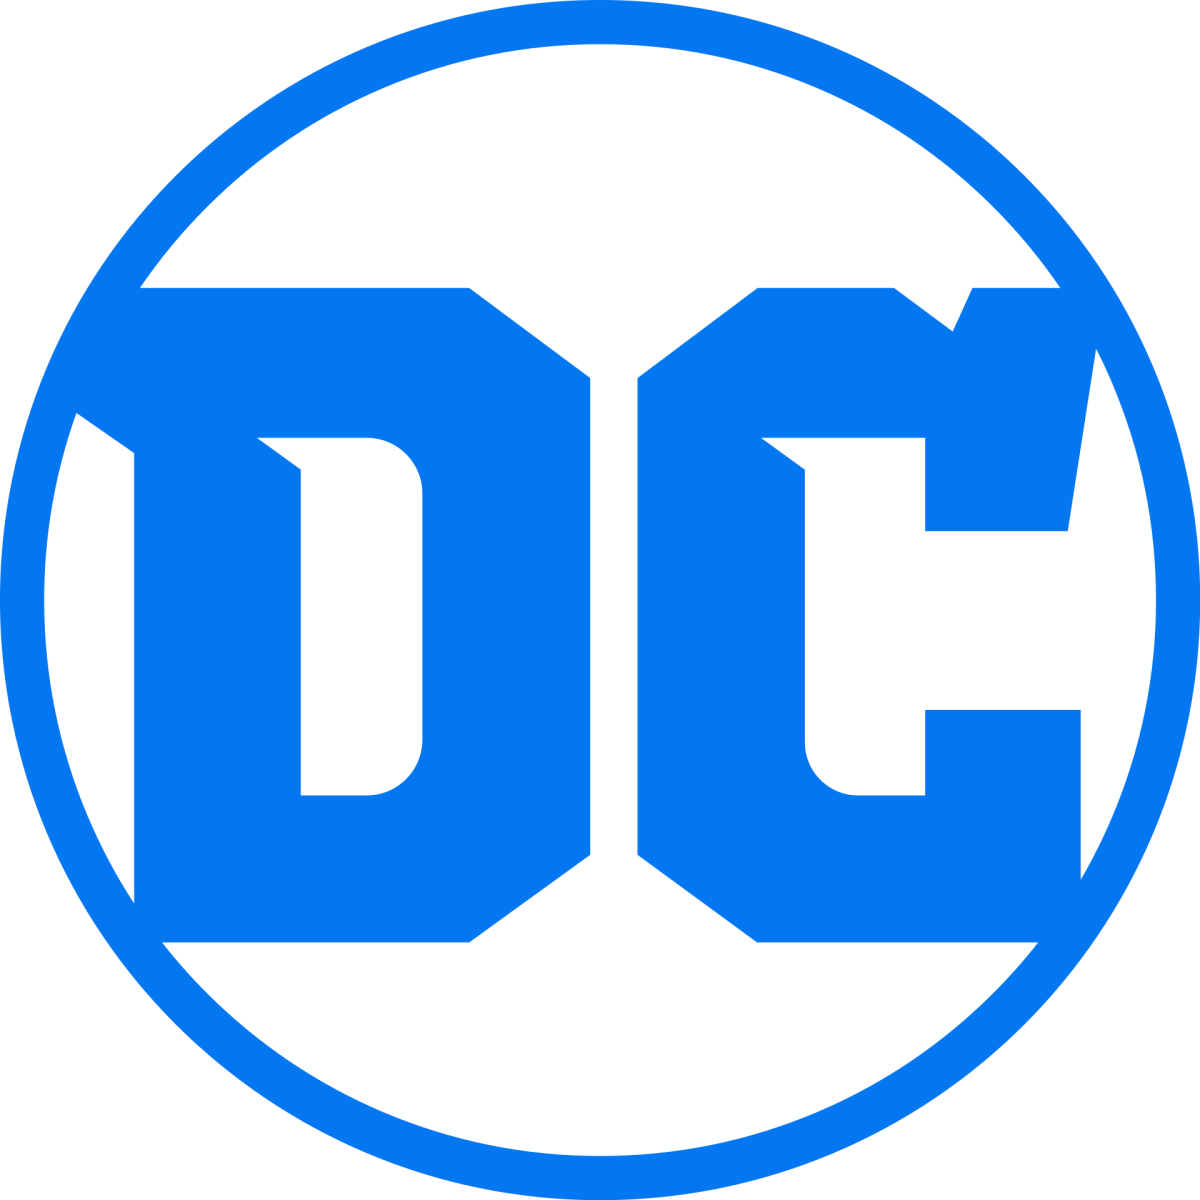 5 Reasons Why DC Comics Just Can't Get It Right